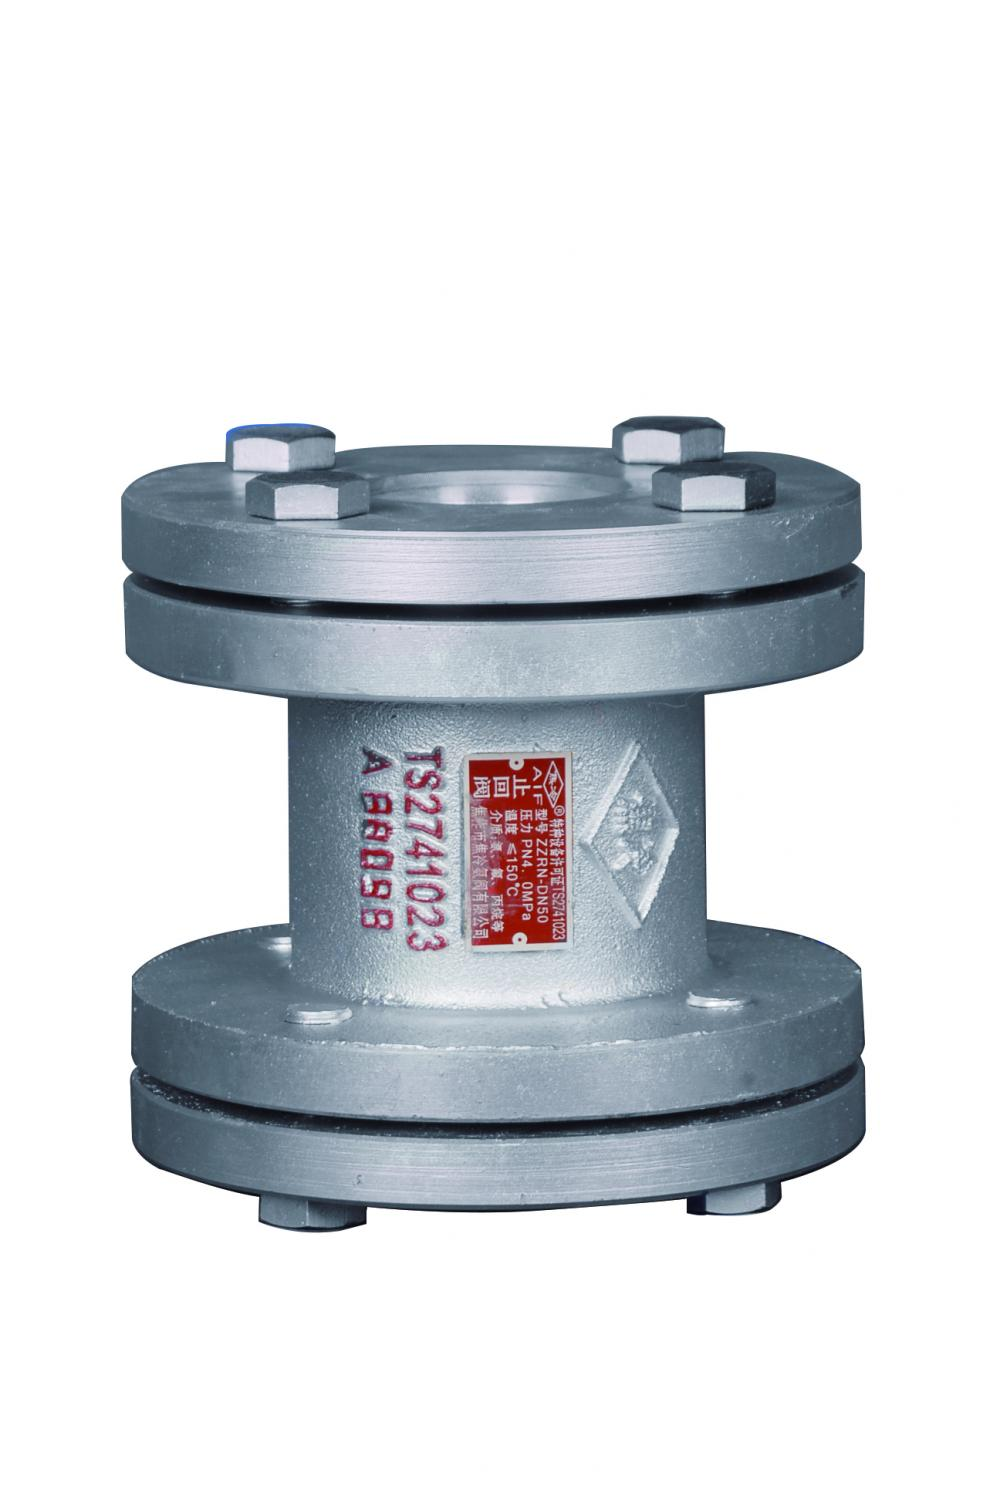 Economic Price Flanged Connection Cast Lifting Check Valve